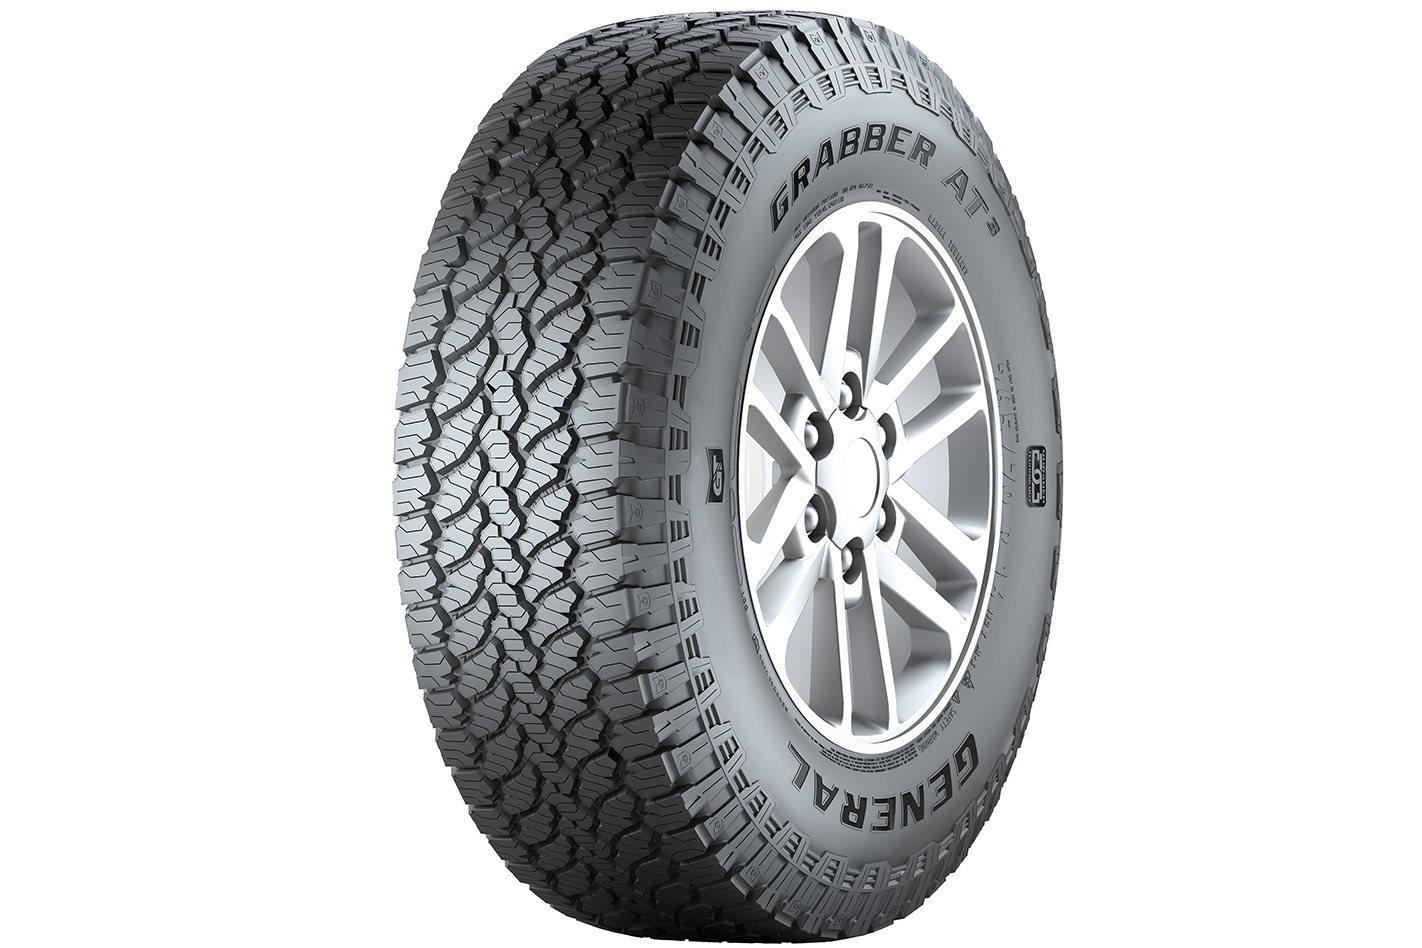 CONTINENTAL TYRES GRABBER X3 & AT3